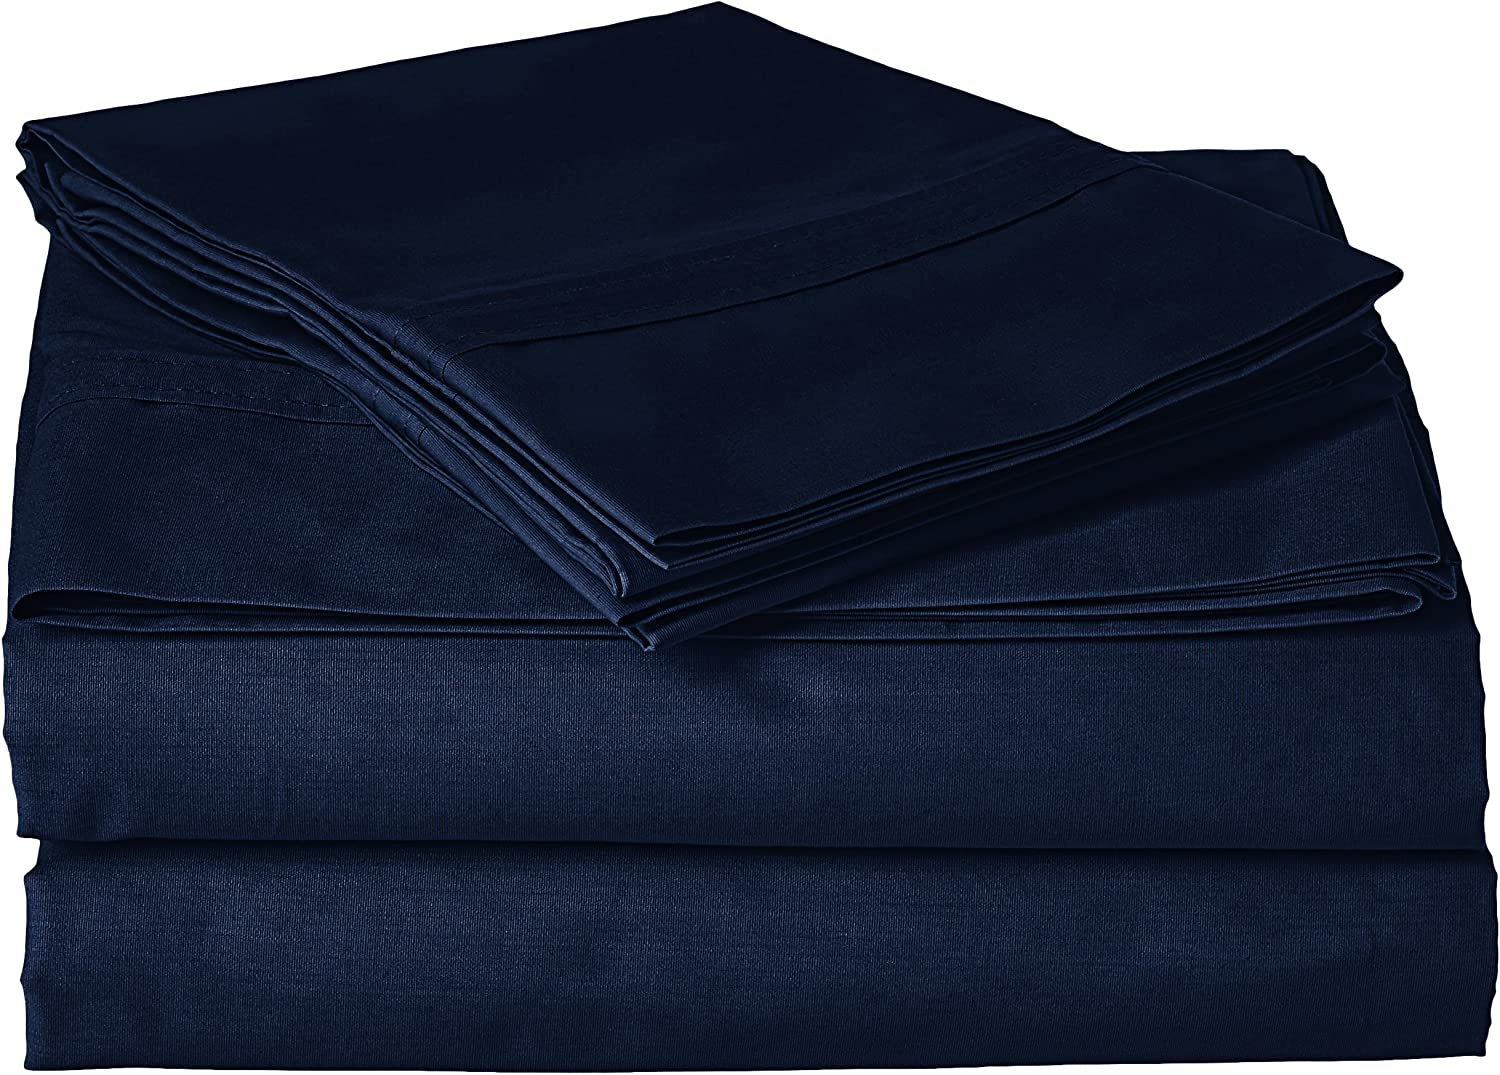 Tribeca Living Max 71% OFF Egyptian Cotton Percale Poc 300 Thread Deep Max 85% OFF Count